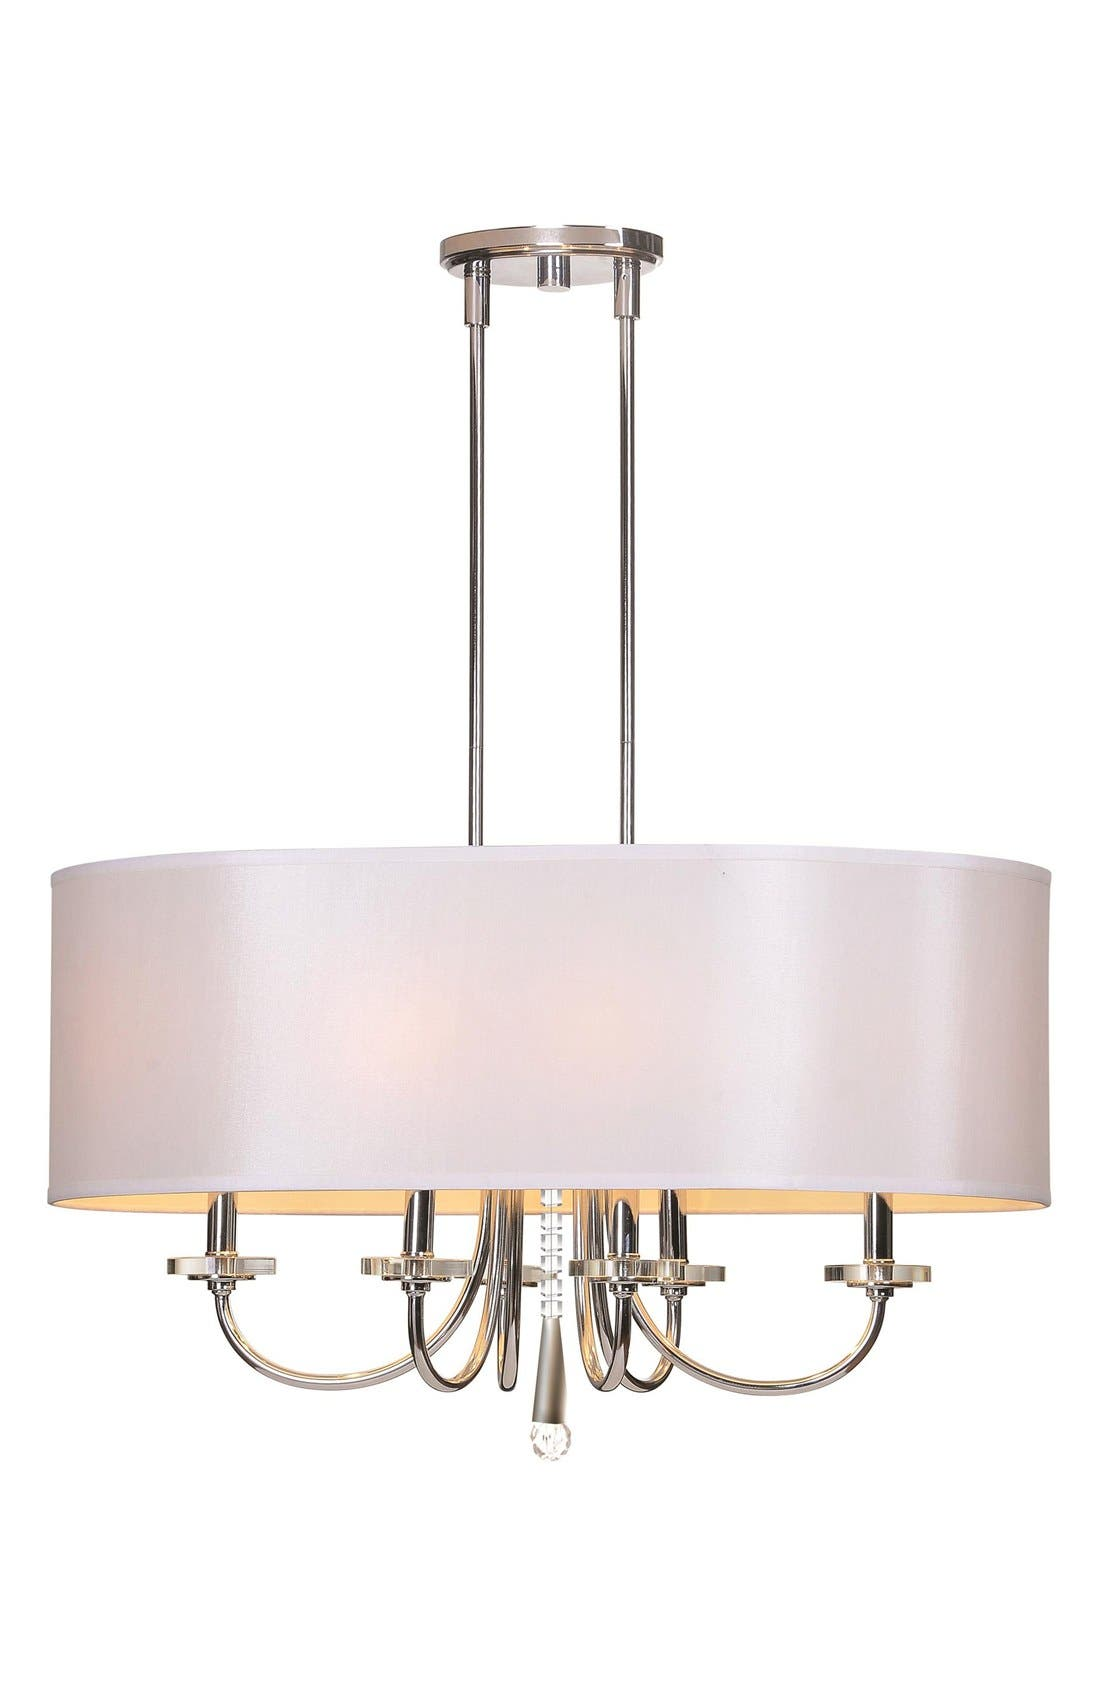 Main Image - Renwil'Lux' Ceiling Light Fixture